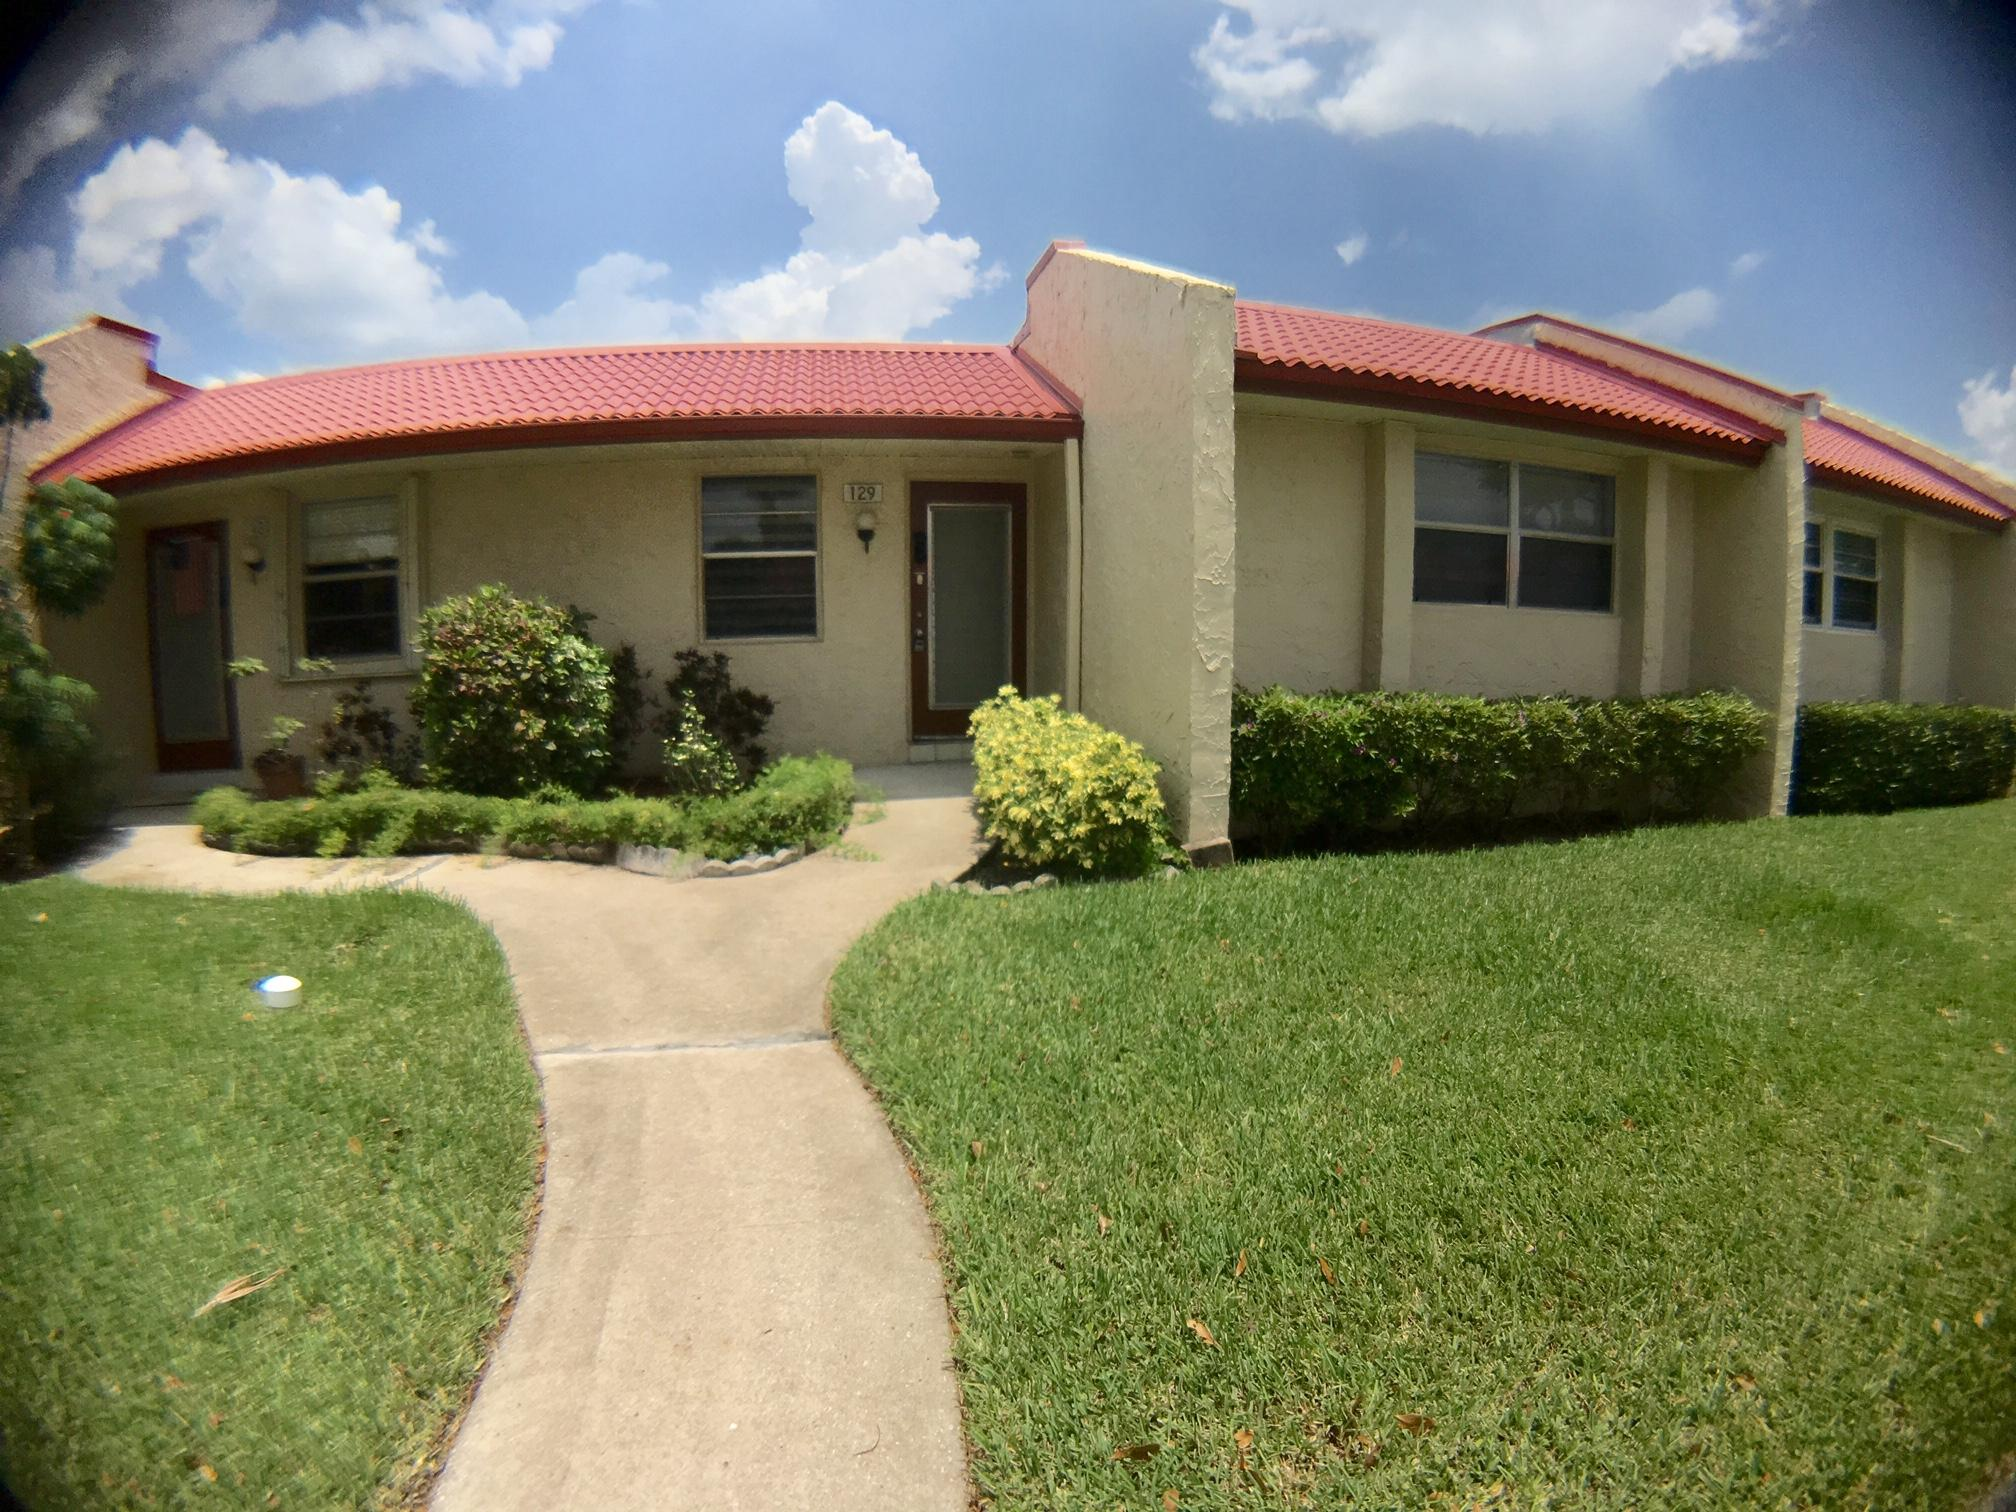 129 Lake Anne Drive, West Palm Beach, Florida 33411, 2 Bedrooms Bedrooms, ,2 BathroomsBathrooms,Condo/Coop,For Rent,Lake Anne,1,RX-10542218